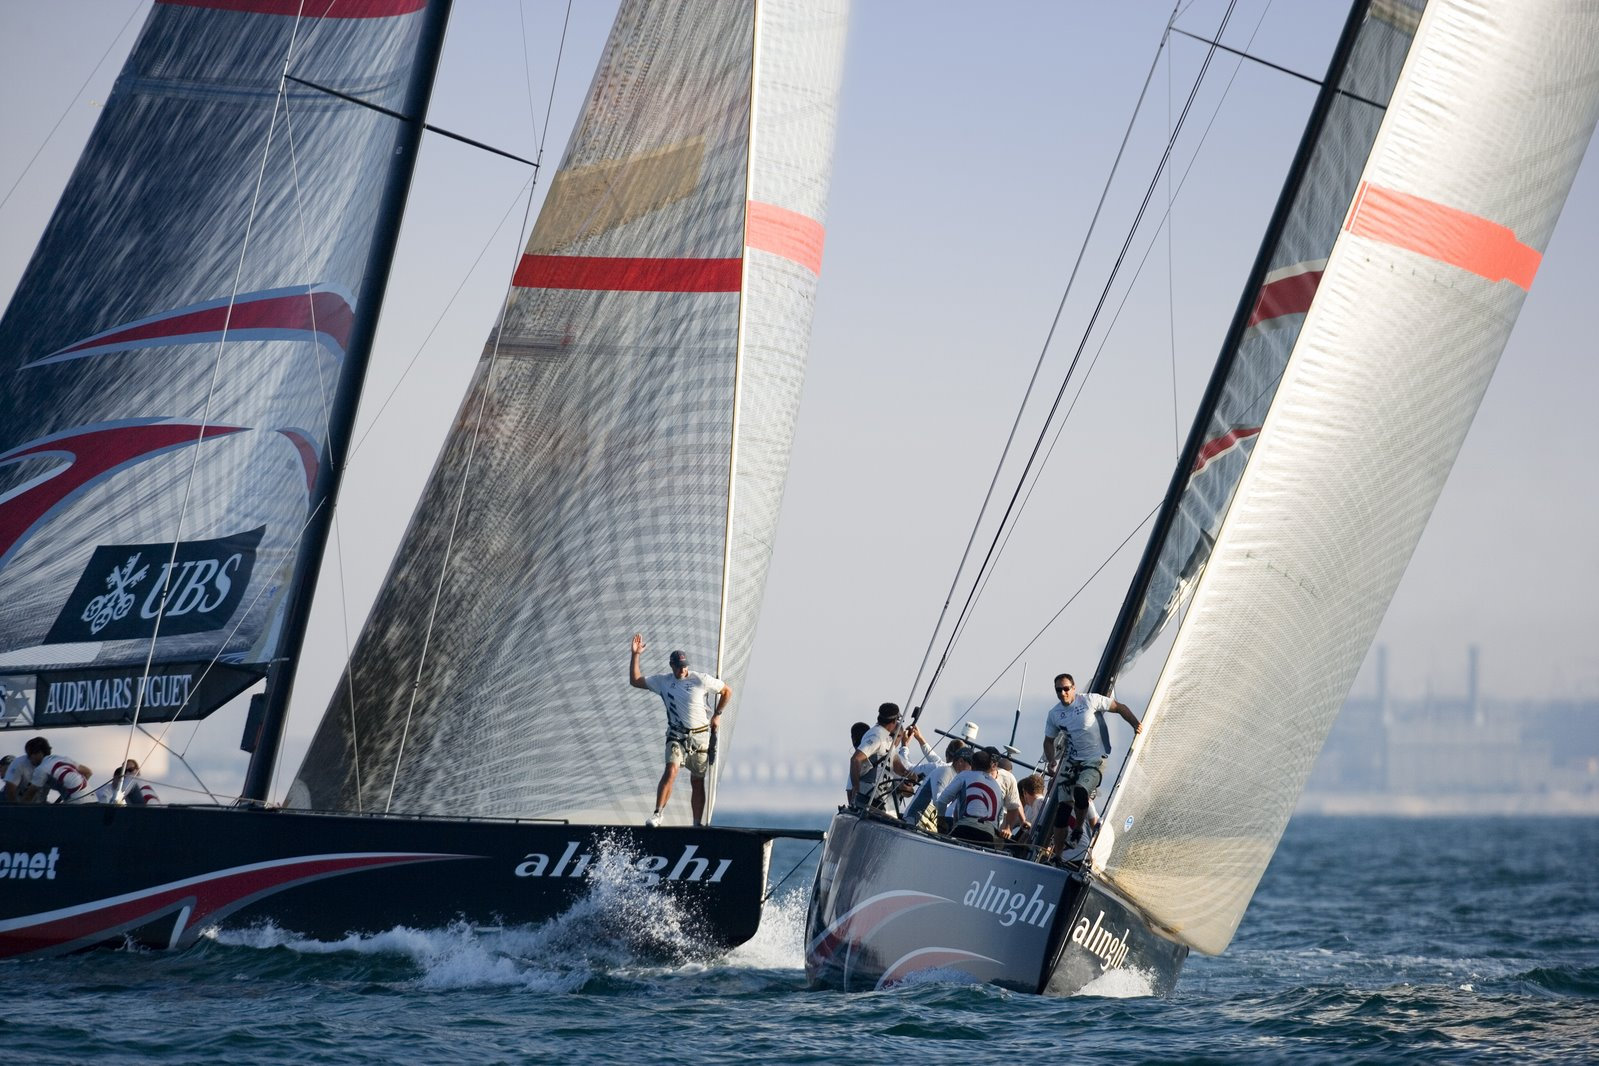 America's Cup (boat) pictures